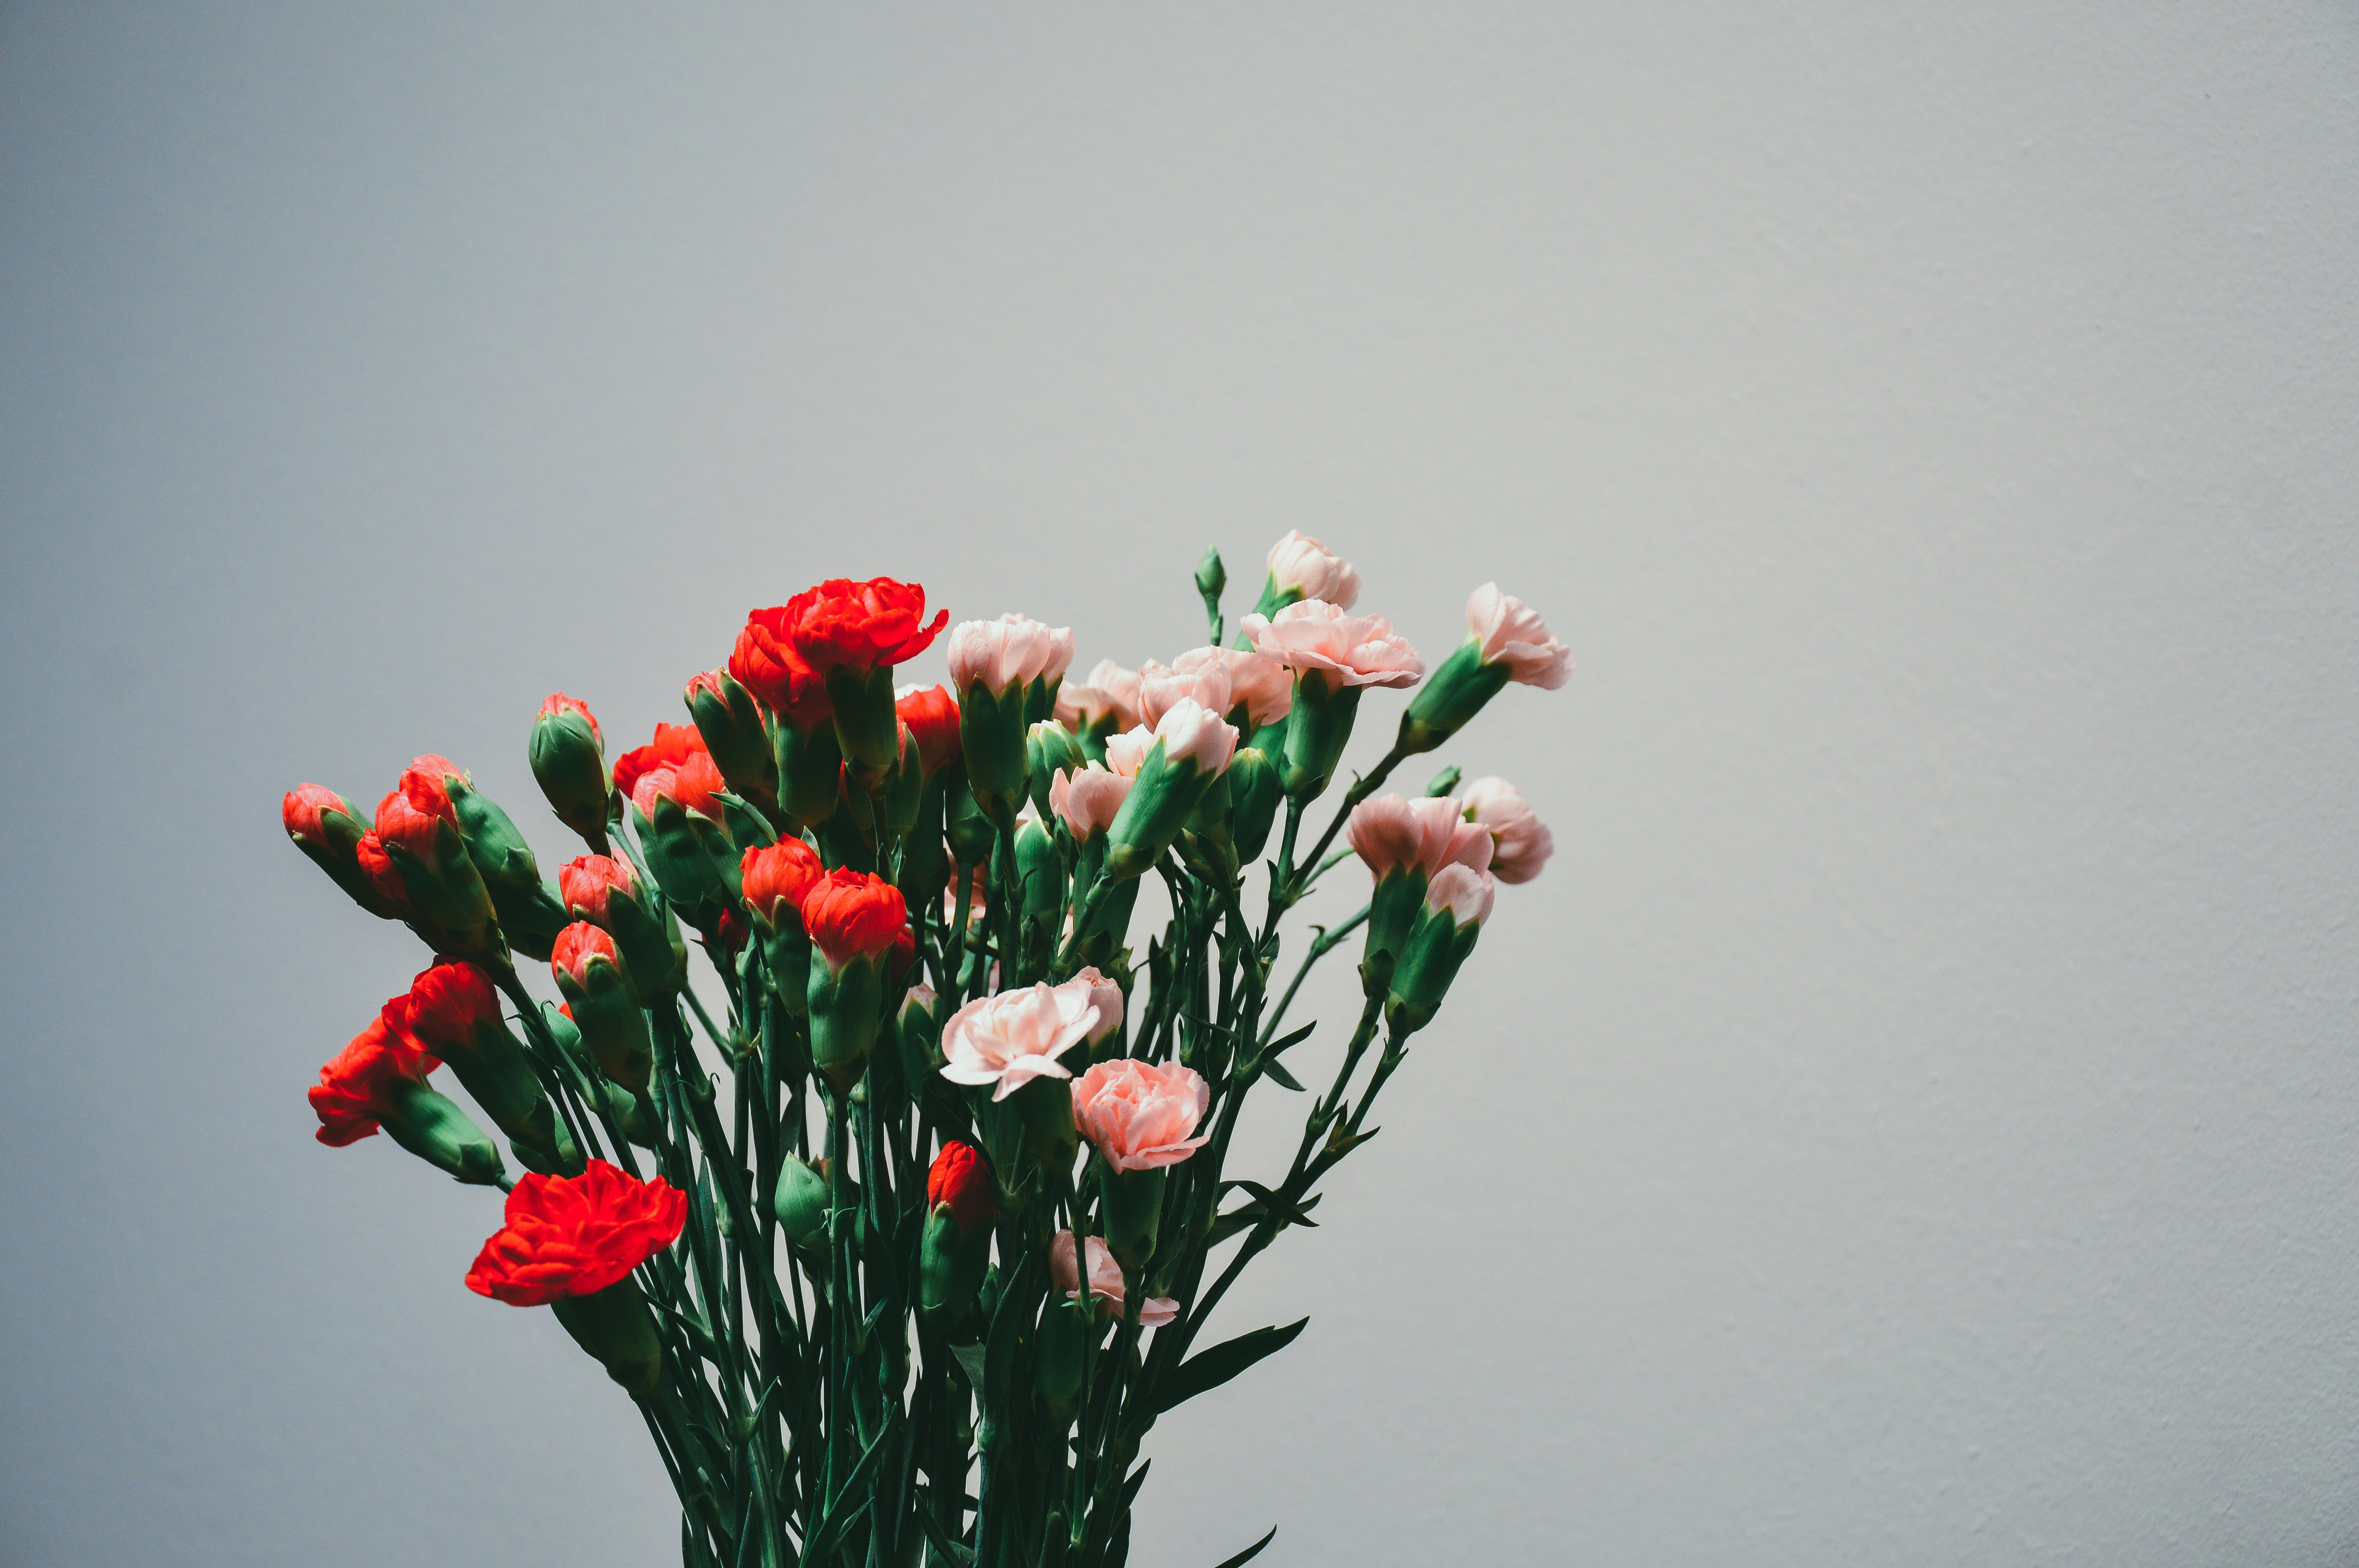 Free stock photo of flowers, plant, carnations